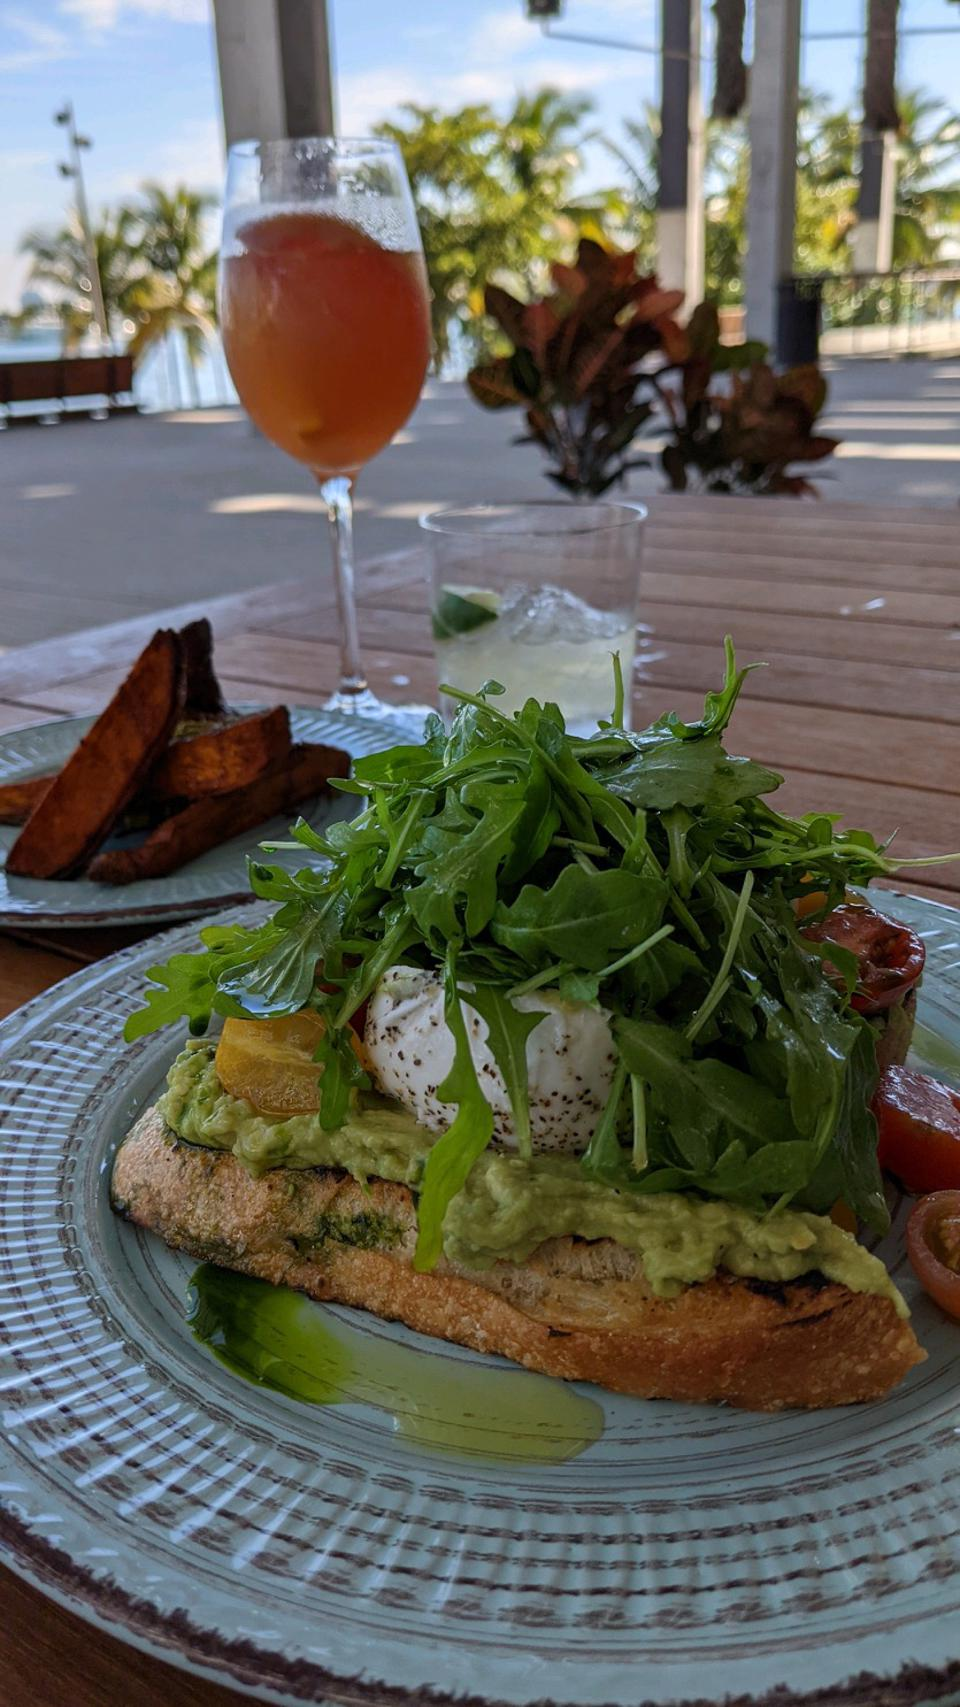 Cocktails, avocado toast and potato wedges at PAMM Miami's Verde restaurant.